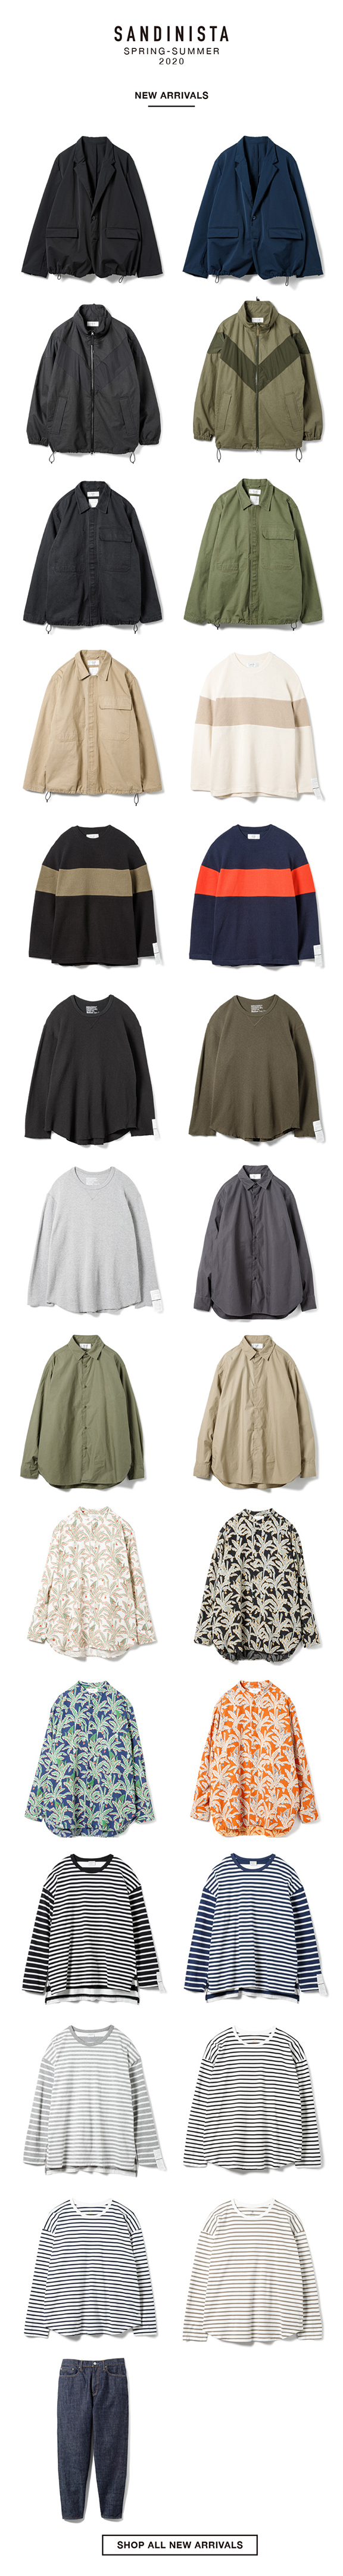 MAIL_NEWARRIVALS_SS20_2020.02.22_576